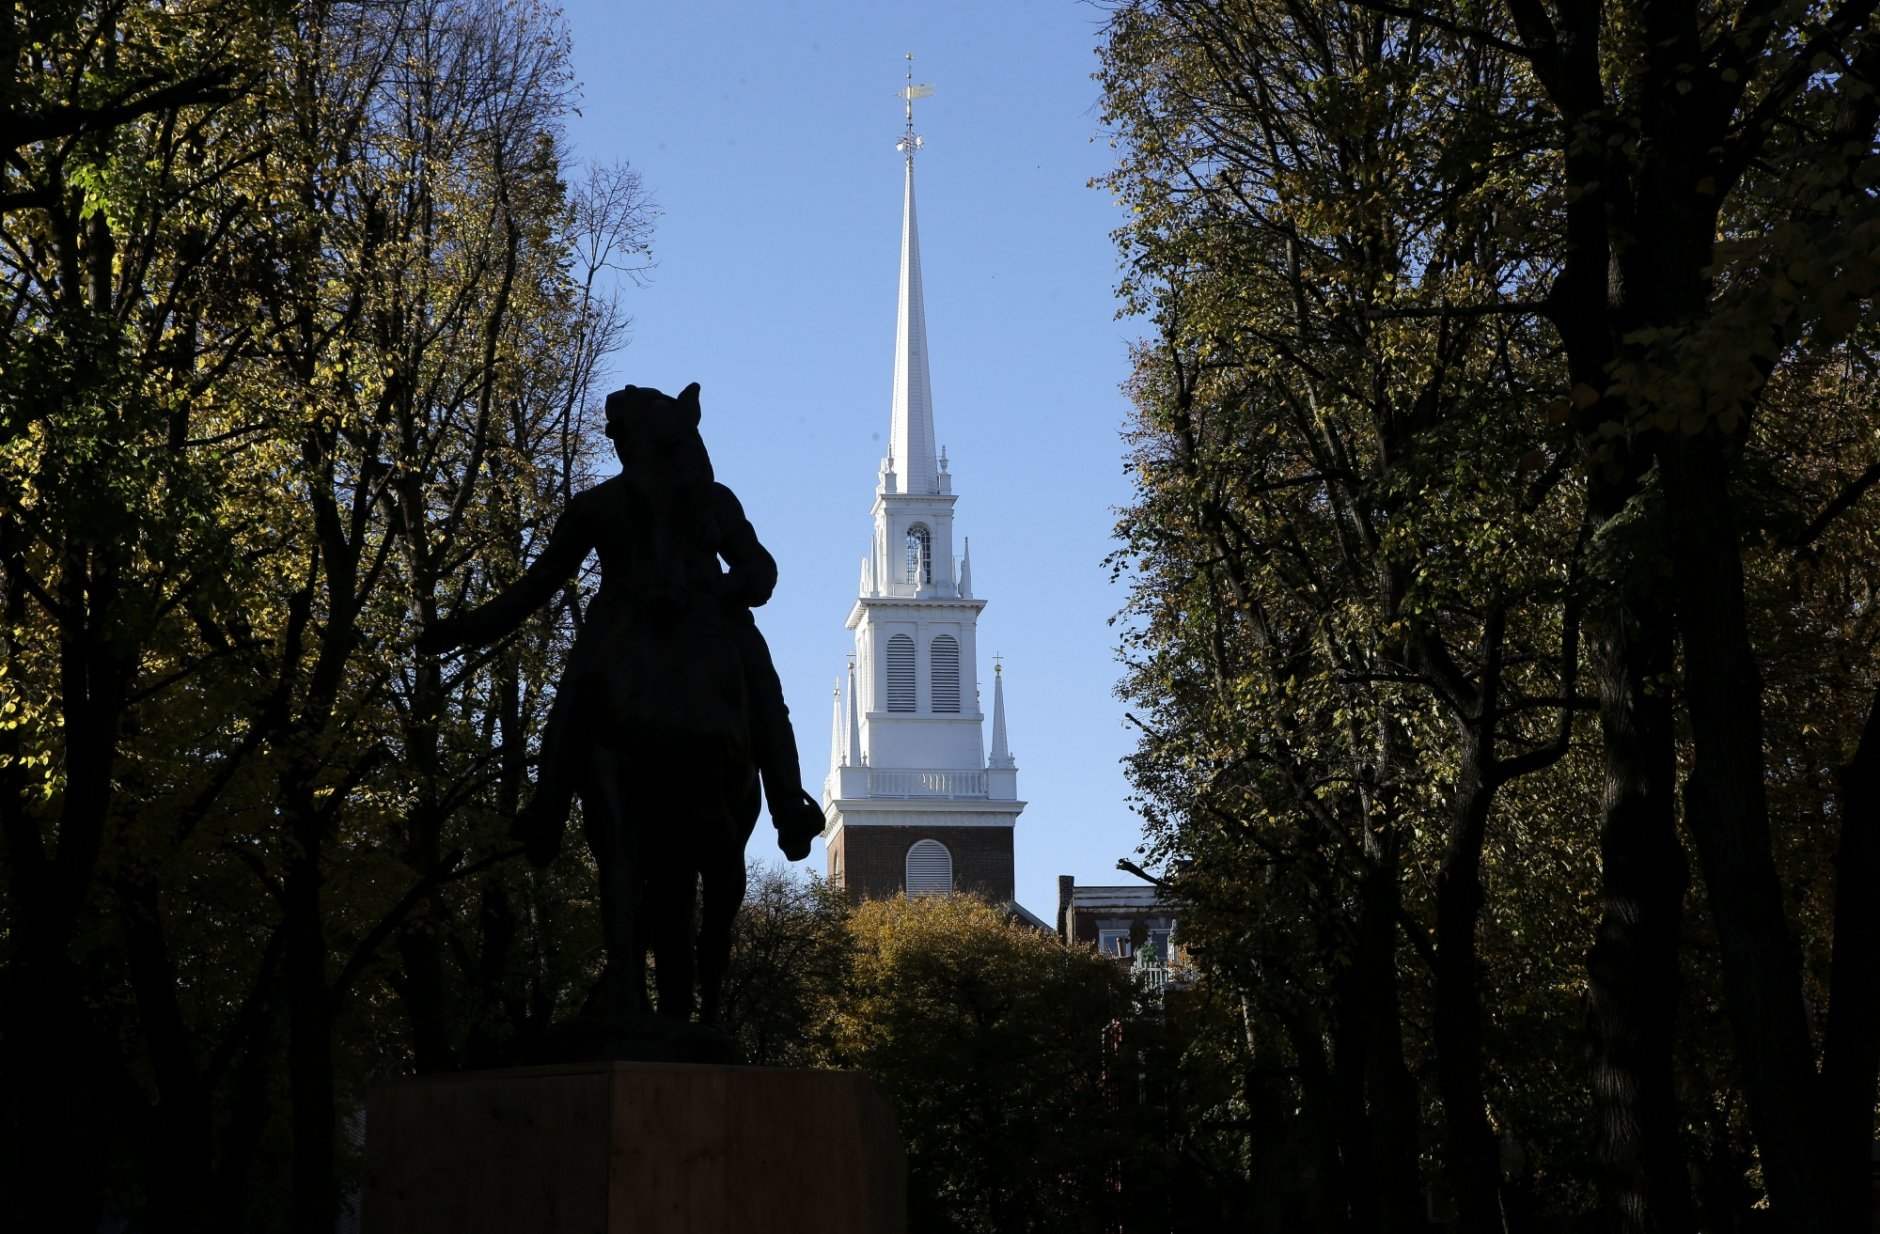 In this Wednesday, Nov. 7, 2018 photo Old North Church stands behind a statue of Paul Revere in the North End neighborhood of Boston. A bronze wreath and plaque that forms part of a memorial, which includes thousands of dog tags honoring soldiers killed in Iraq and Afghanistan, has been installed on the grounds of the church. The new plaque and wreath help explain the meaning of the dog tags and acknowledge Britain's contribution and sacrifice. (AP Photo/Steven Senne)